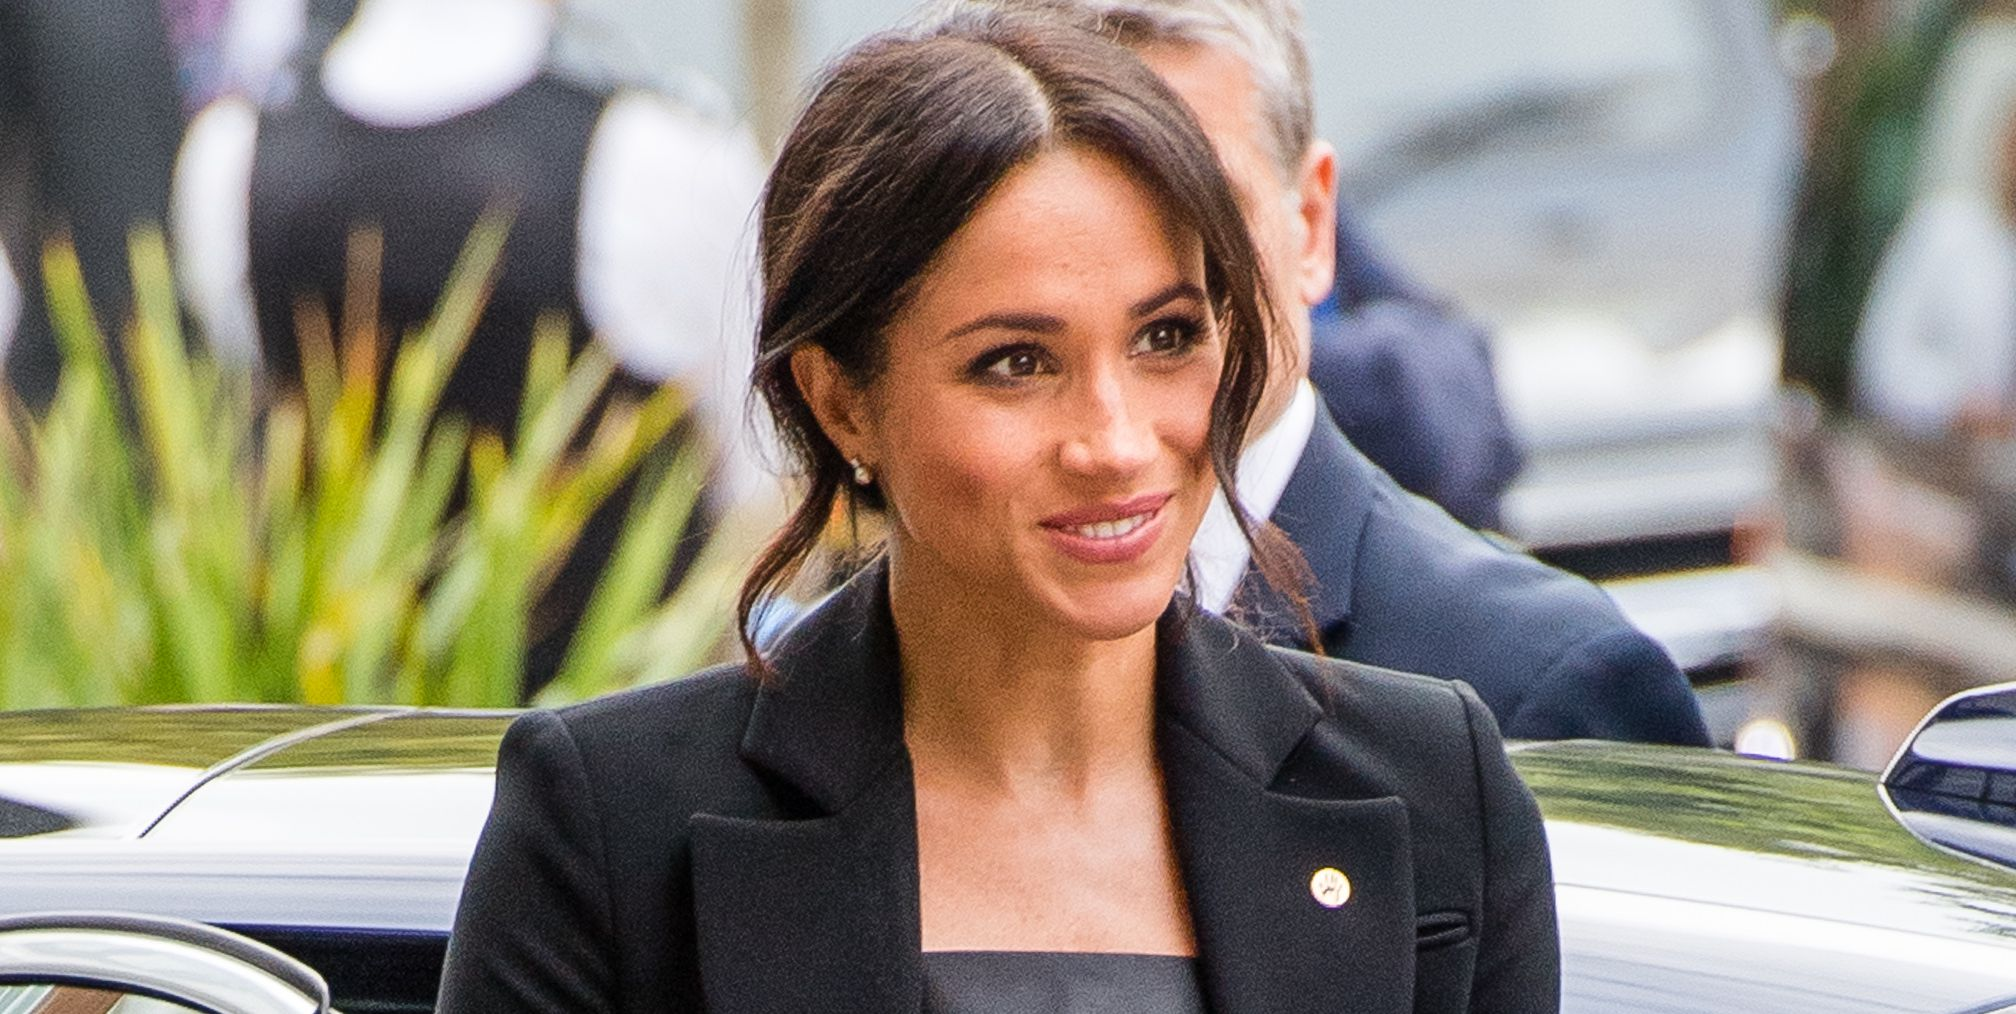 Meghan Markle Secretly Attended a Meeting on Higher Education